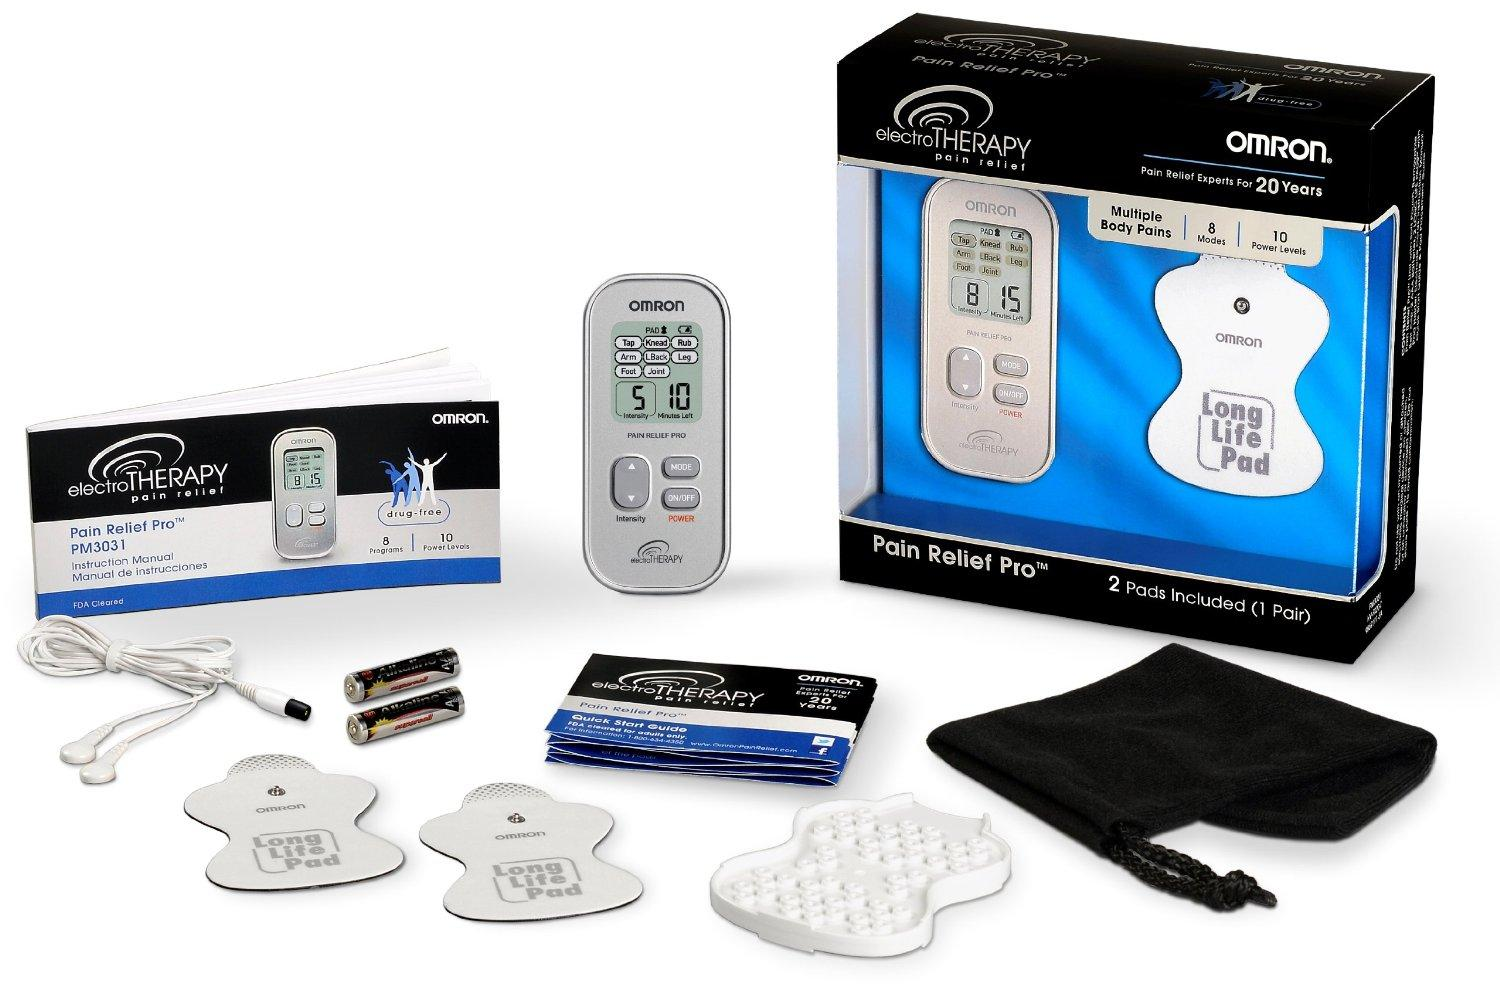 Lightning deal! Omron Pain Relief Pro